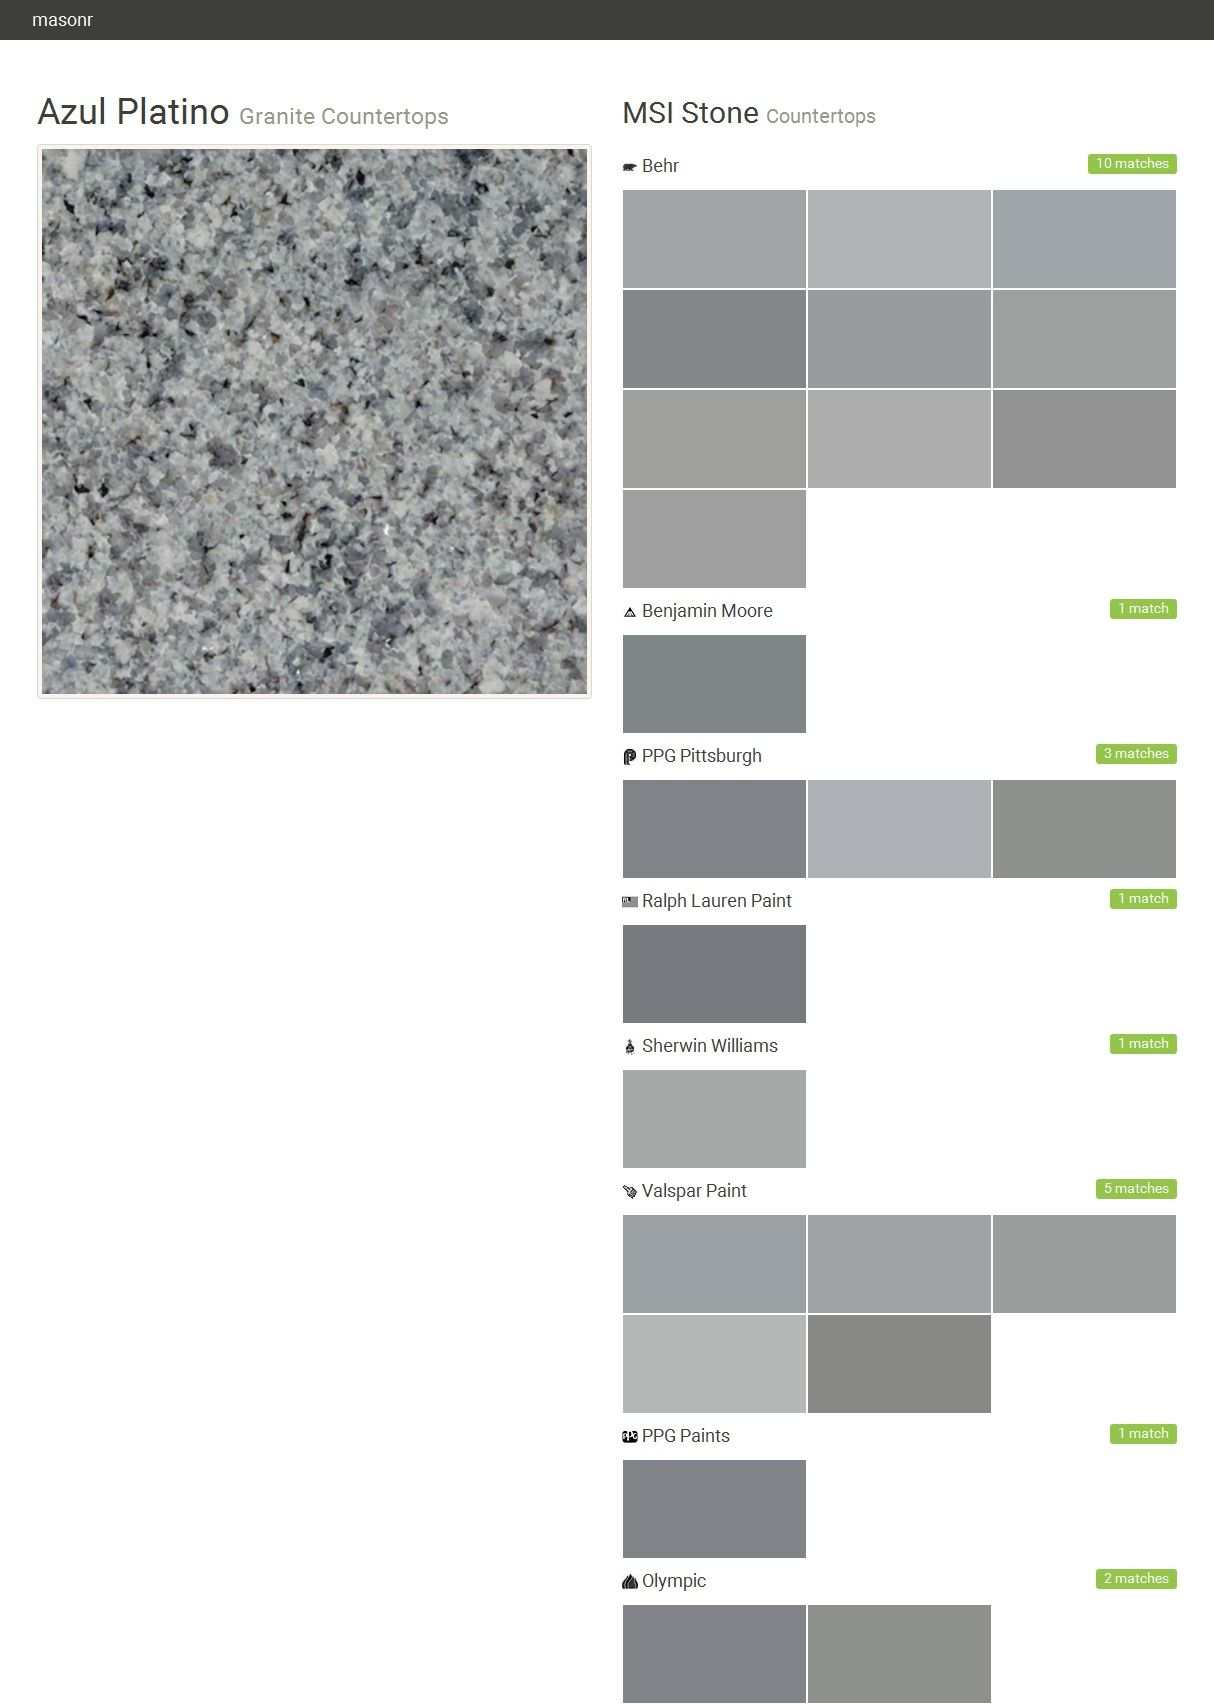 Ppg Pittsburgh, Pintar Ppg, Stone Behr, Msi Stone, Hearts Live, 5 Hearts,  Countertop Ideals, Kitchen Countertop, Pittsburgh Ralph